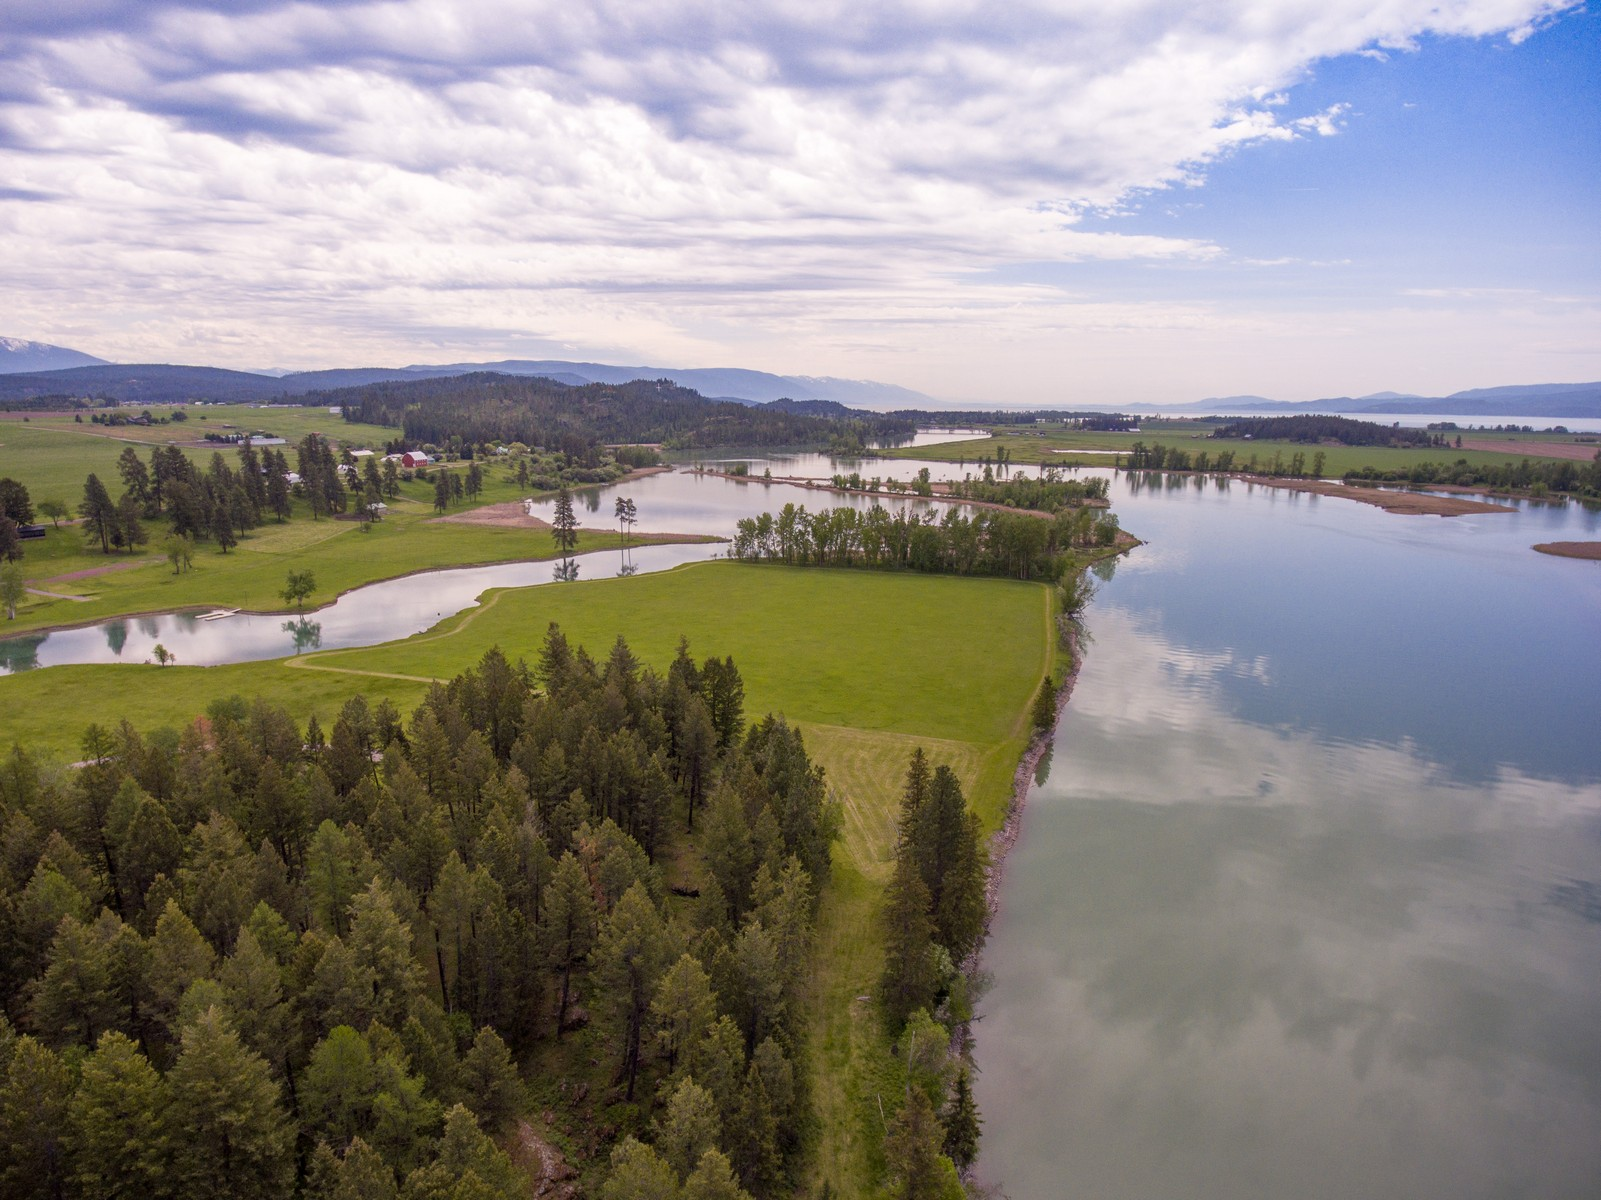 Land for Sale at 700 Ramsfield Road 700 Ramsfield Rd Bigfork, Montana 59911 United States